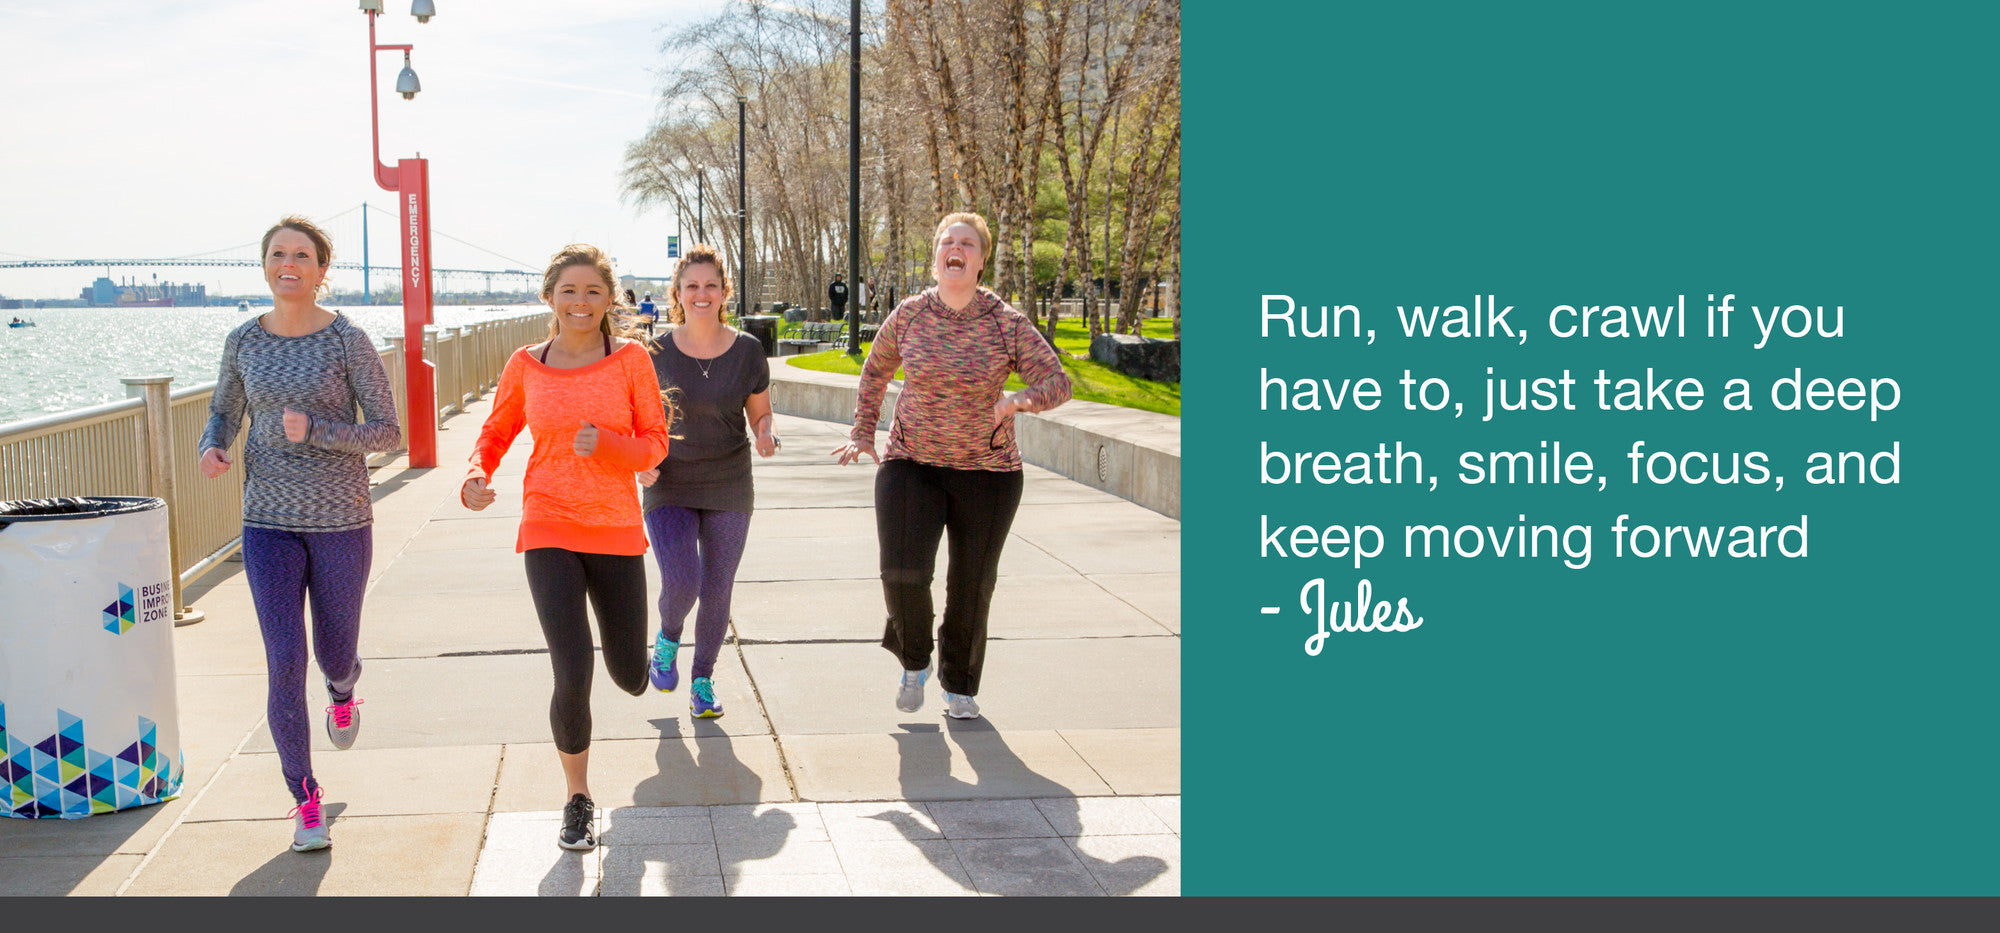 Run, walk, crawl if you have to, just take a deep breath, smile, focus and keep moving forward - Jules of Joules Athletics